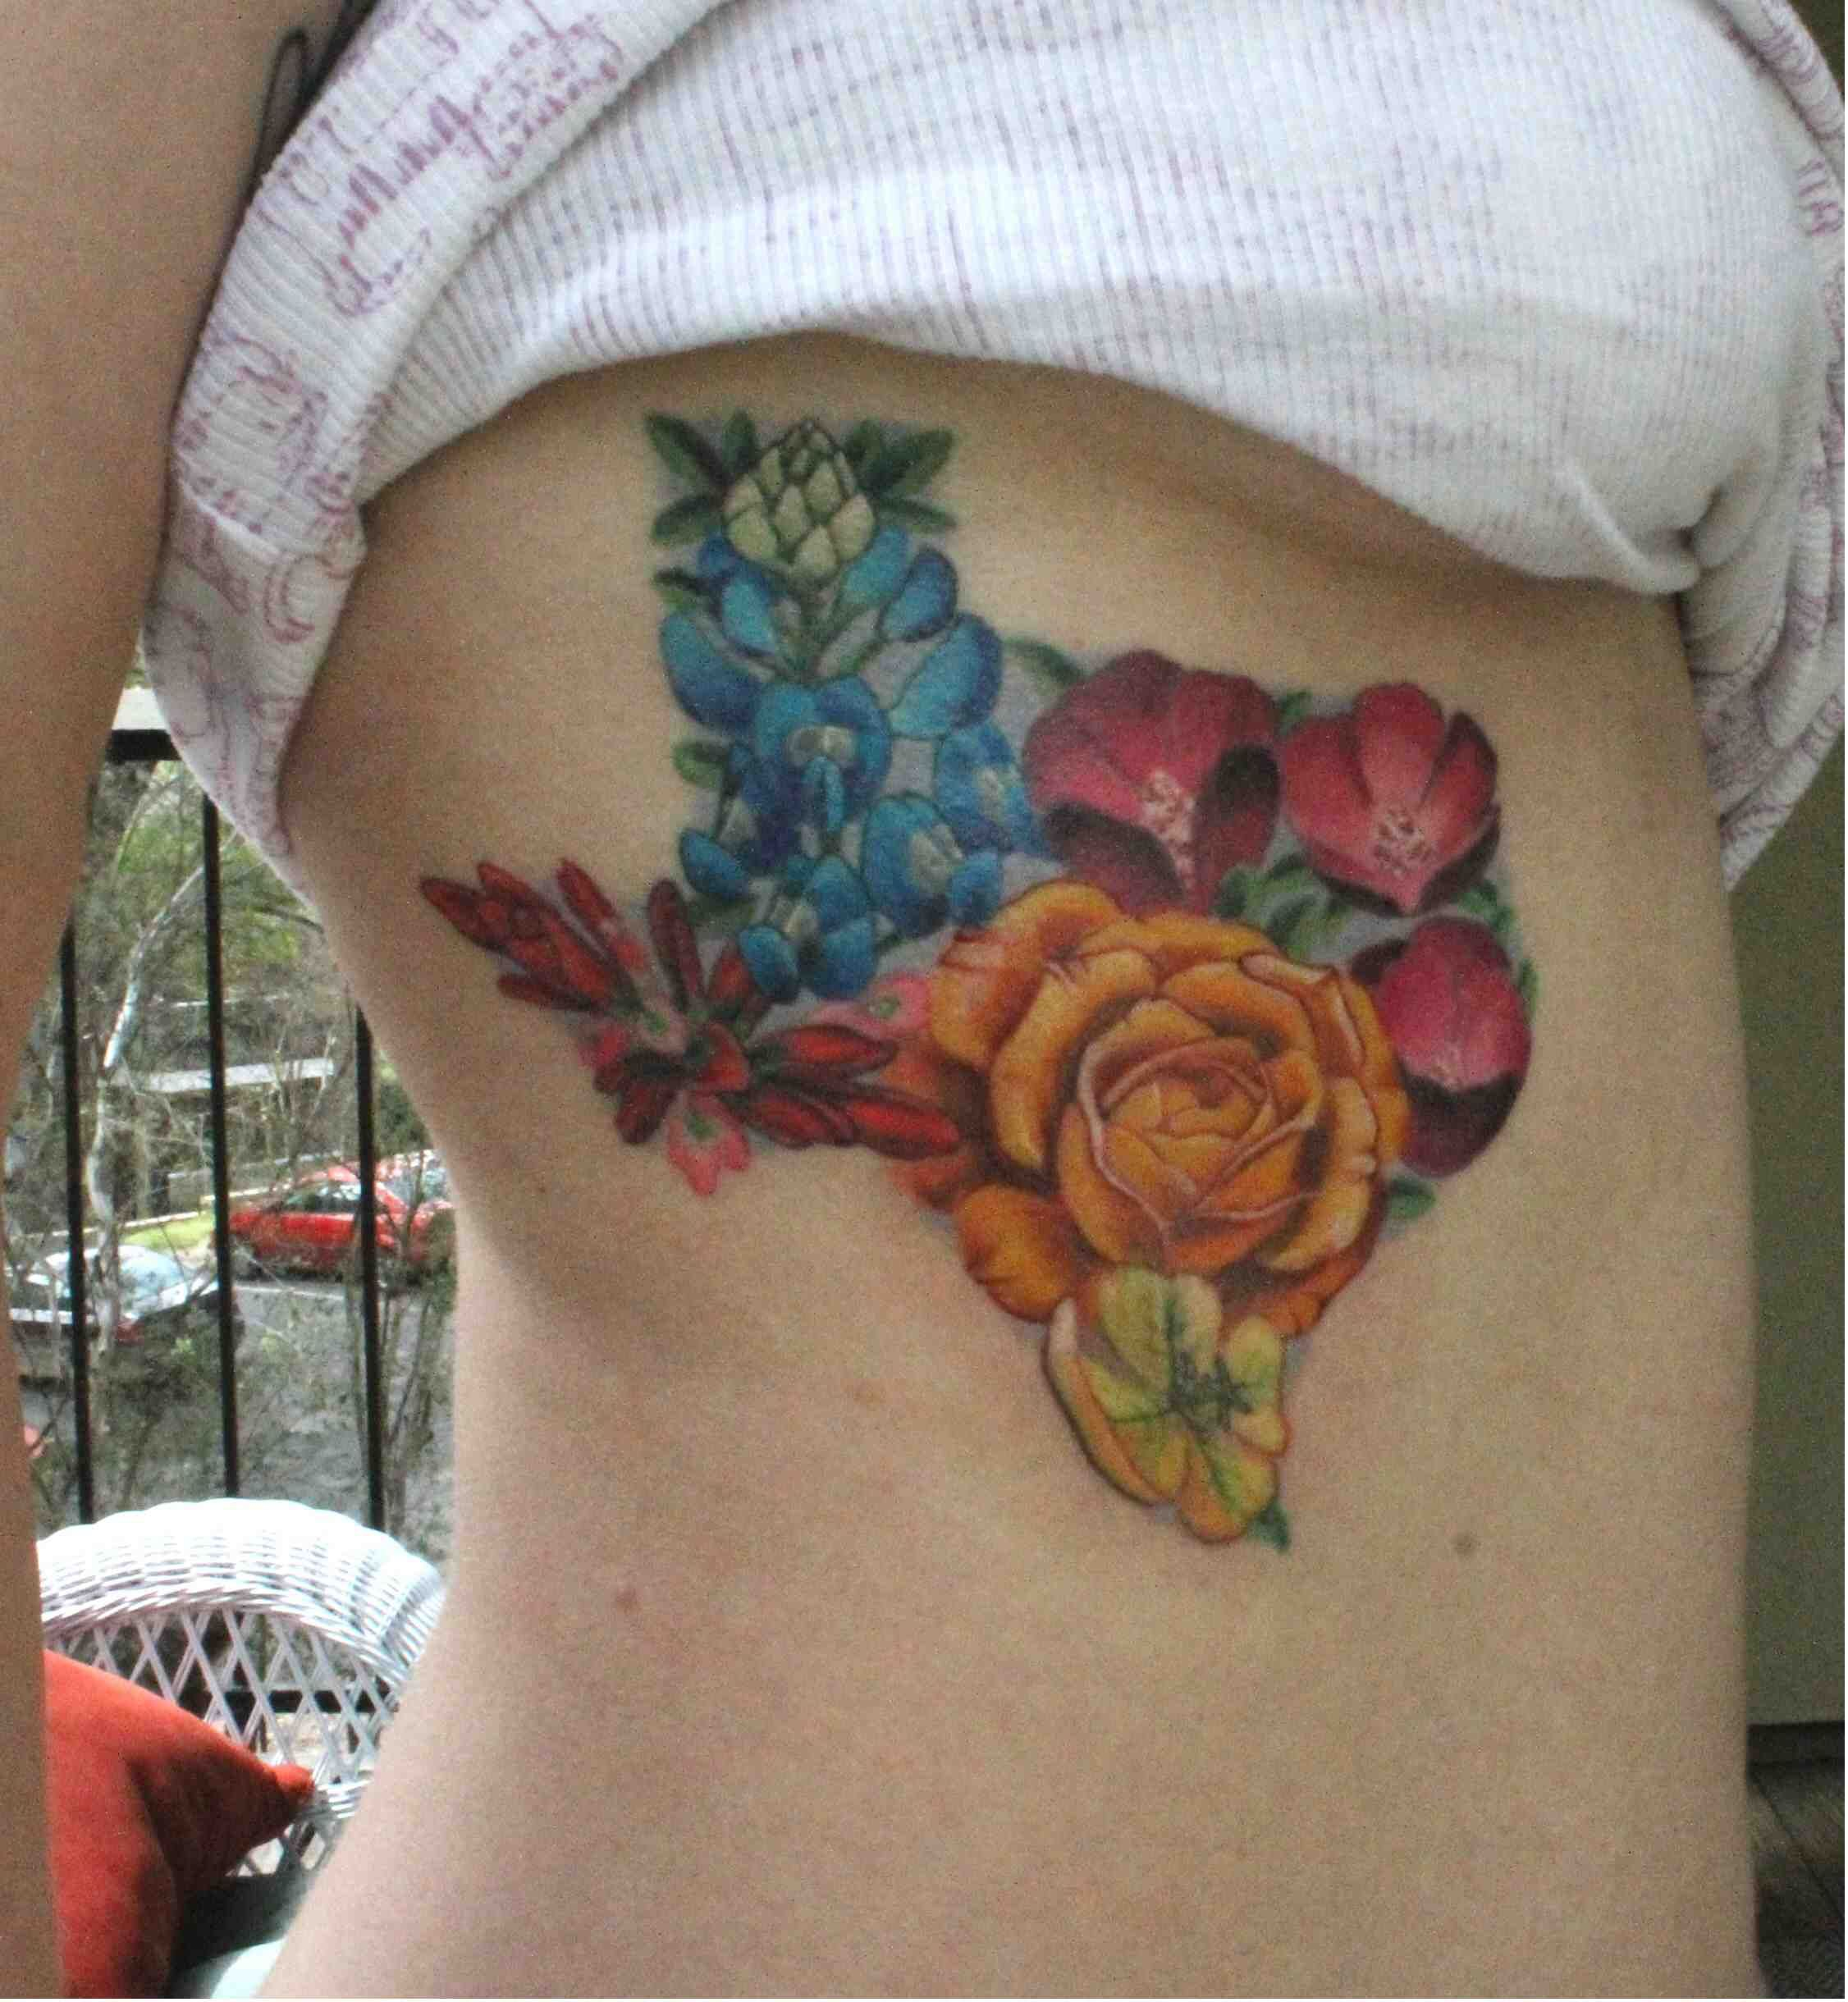 Texas flowers in the shape of Texas, done by Sando at Dovetail Tattoo in Austin, Texas. - Imgur